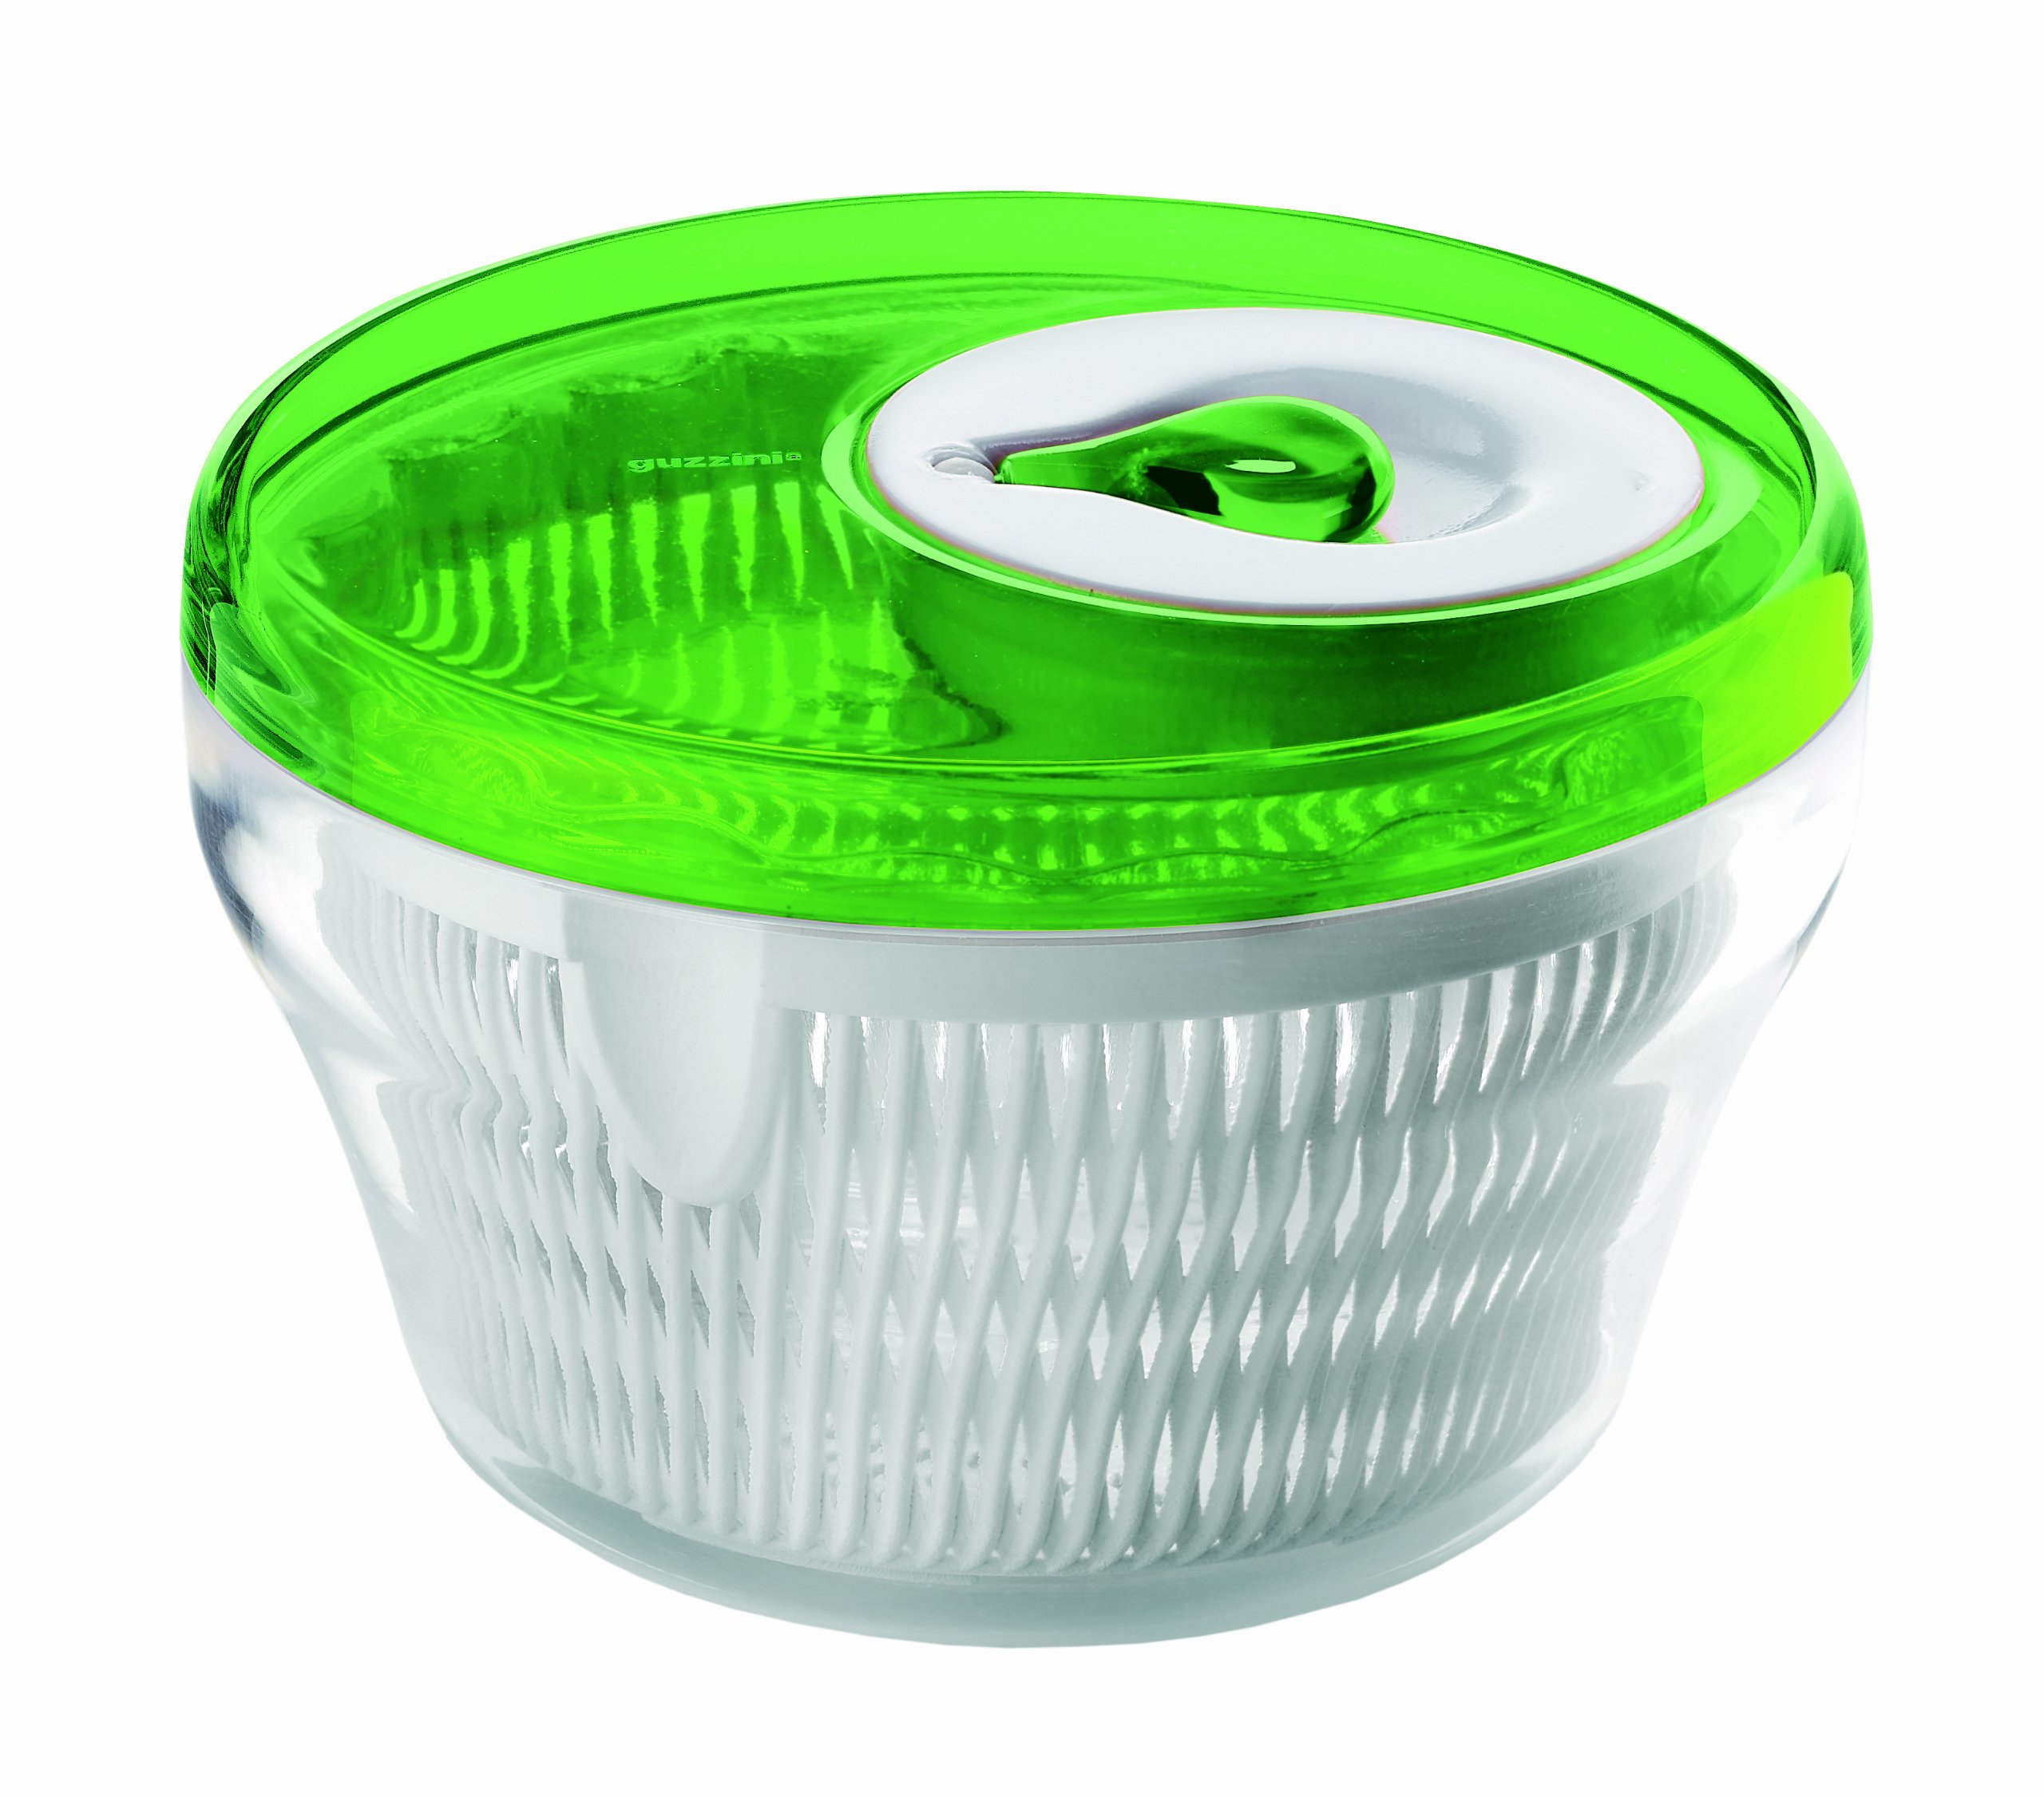 Latina 11'' Salad Spinner in Green by Guzzini